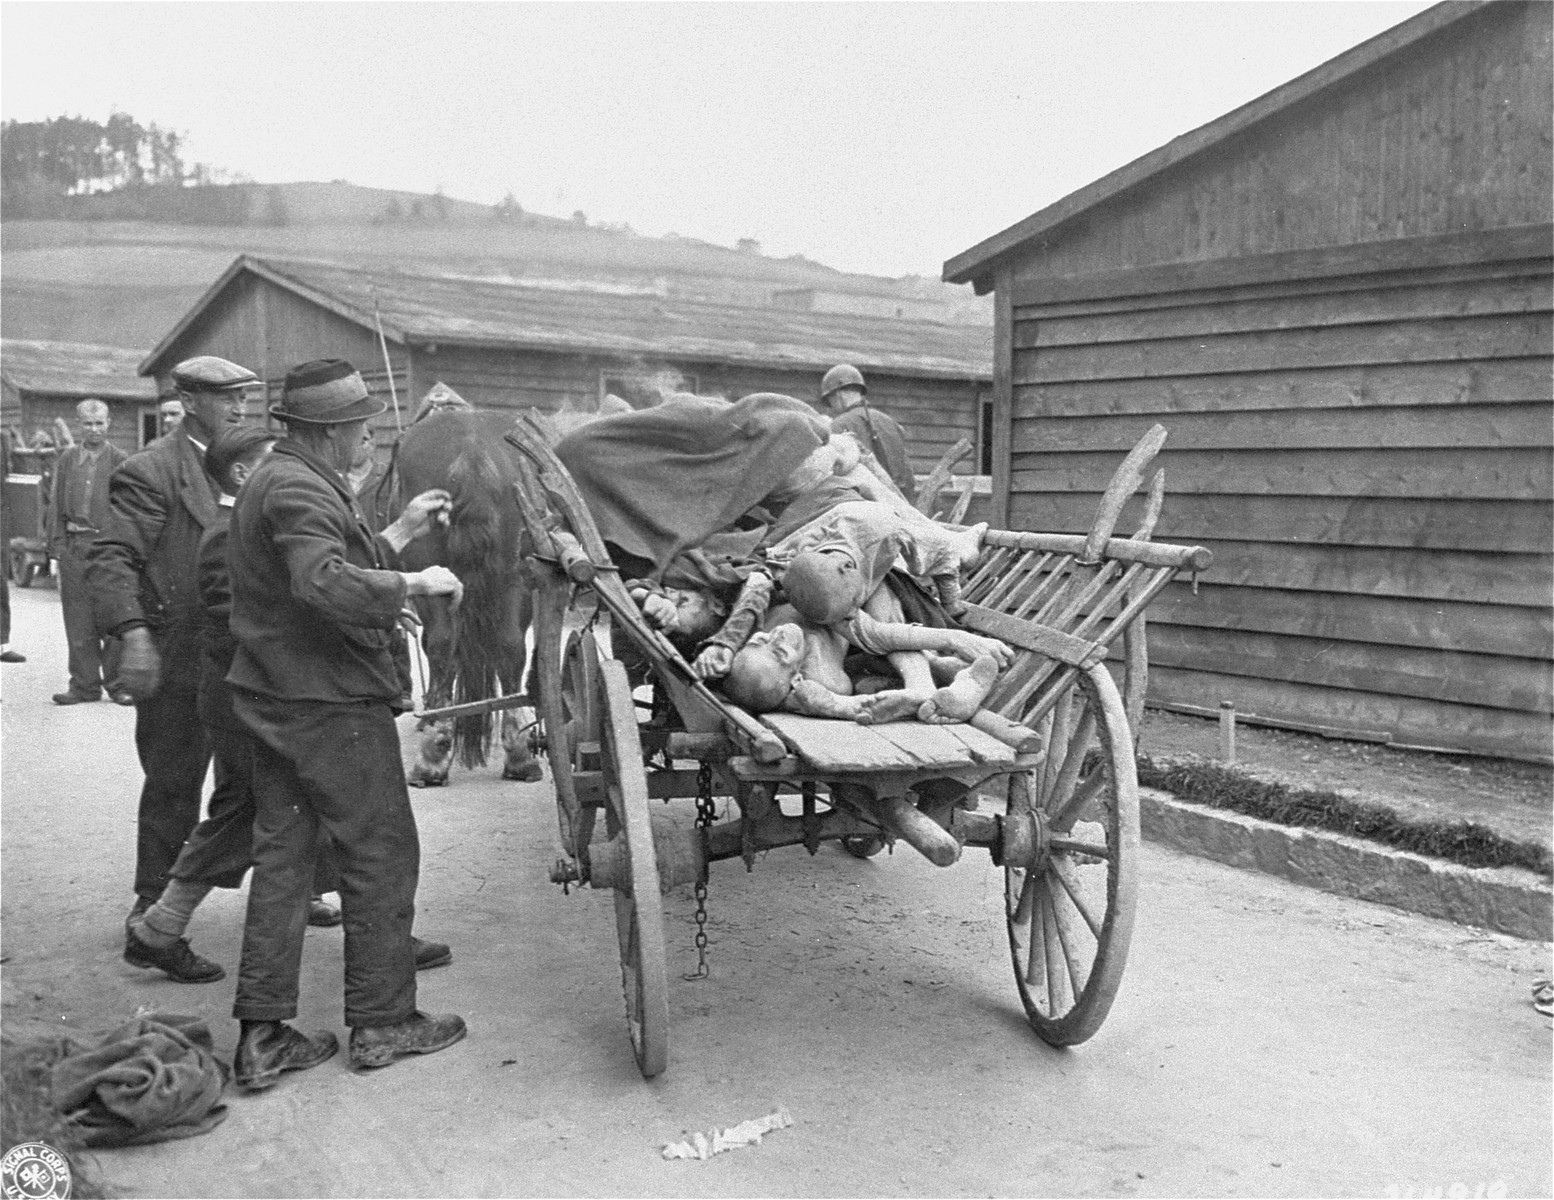 Austrian civilians load corpses onto a cart that will transport the bodies to a mass grave.